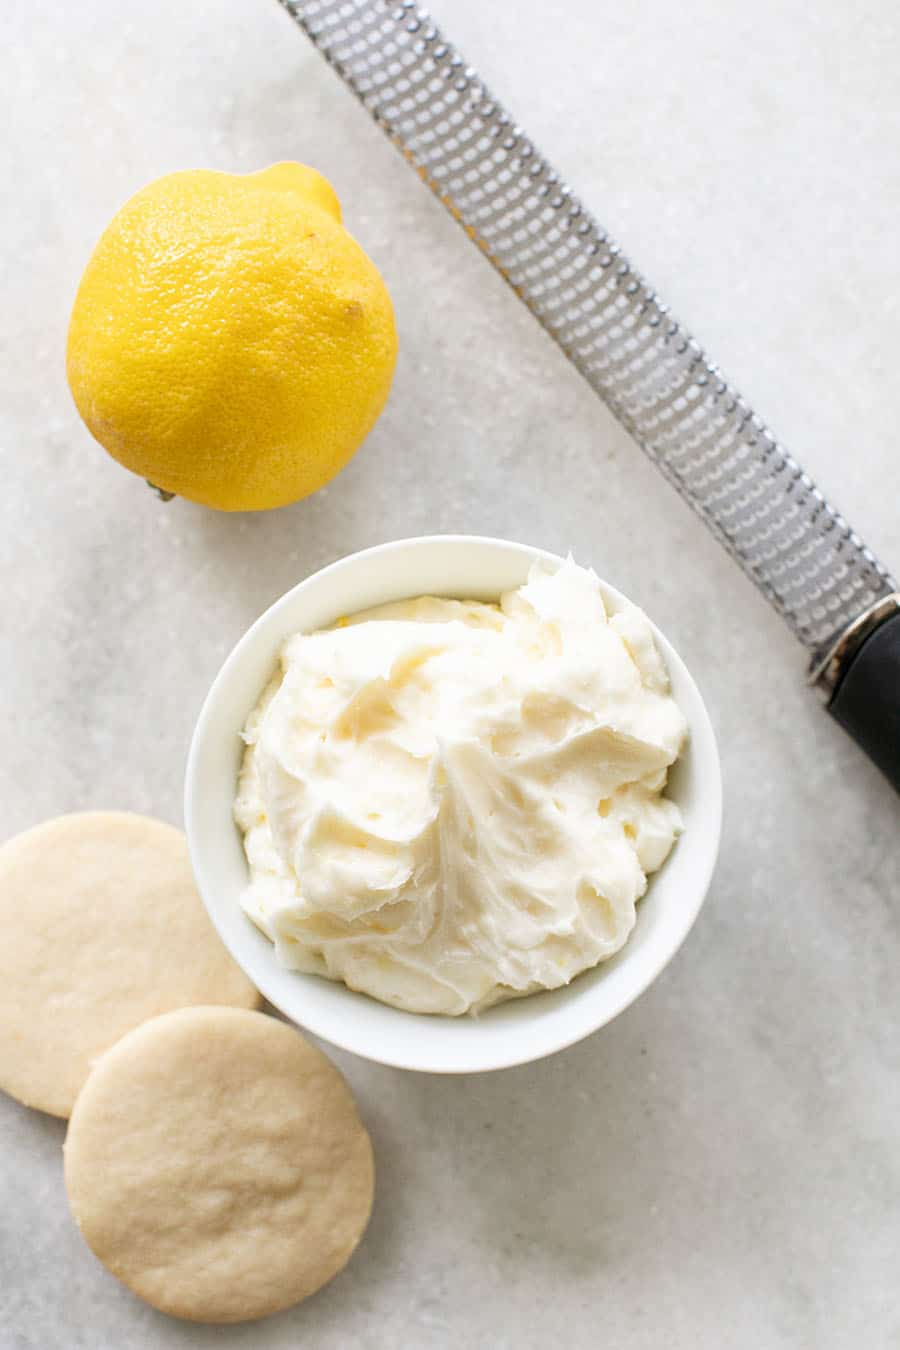 Lemon frosting in a small bowl.